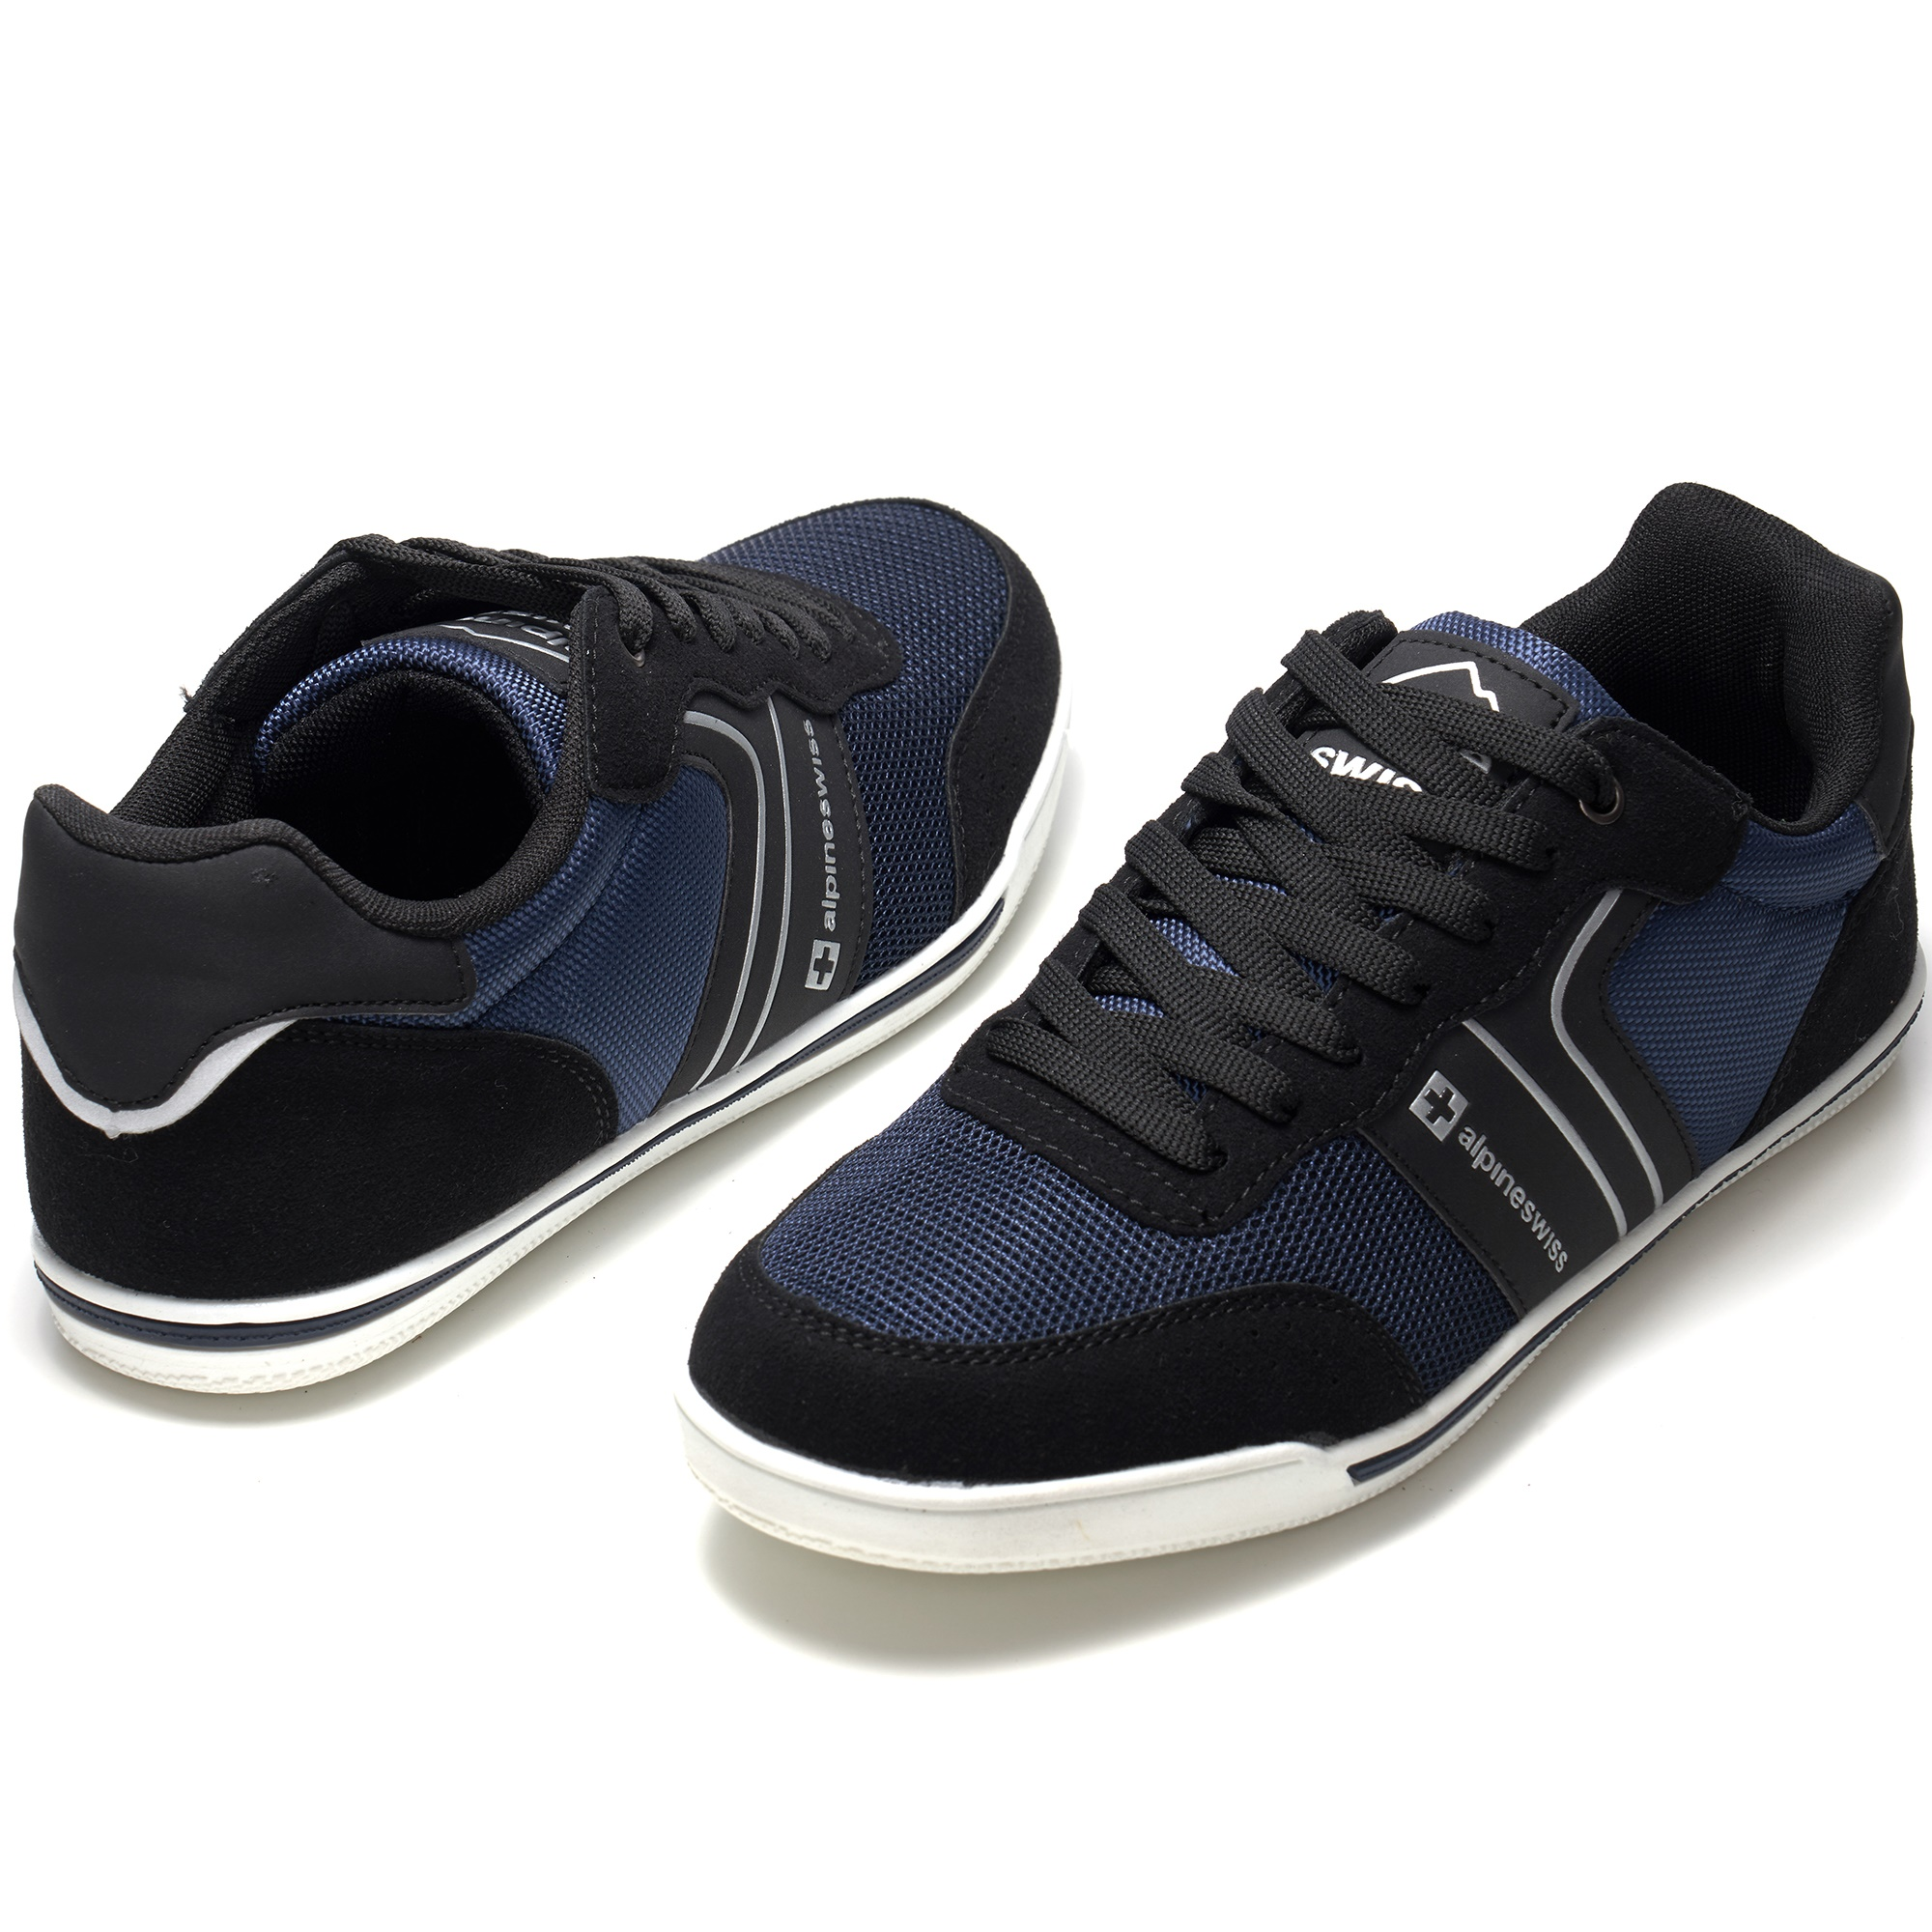 Alpine-Swiss-Liam-Mens-Fashion-Sneakers-Suede-Trim-Low-Top-Lace-Up-Tennis-Shoes thumbnail 33